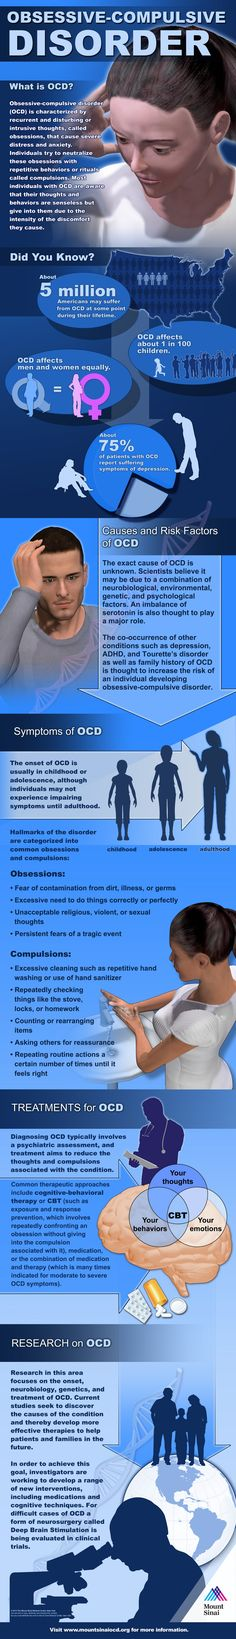 Obsessive Compulsive Disorder (OCD) Infographic - Approximately five million Americans may suffer from obsessive-compulsive disorder (OCD) at some point in their lives. Learn about common obsessions and compulsions as well as the therapies used to treat them. Published by Mount Sinai Health System